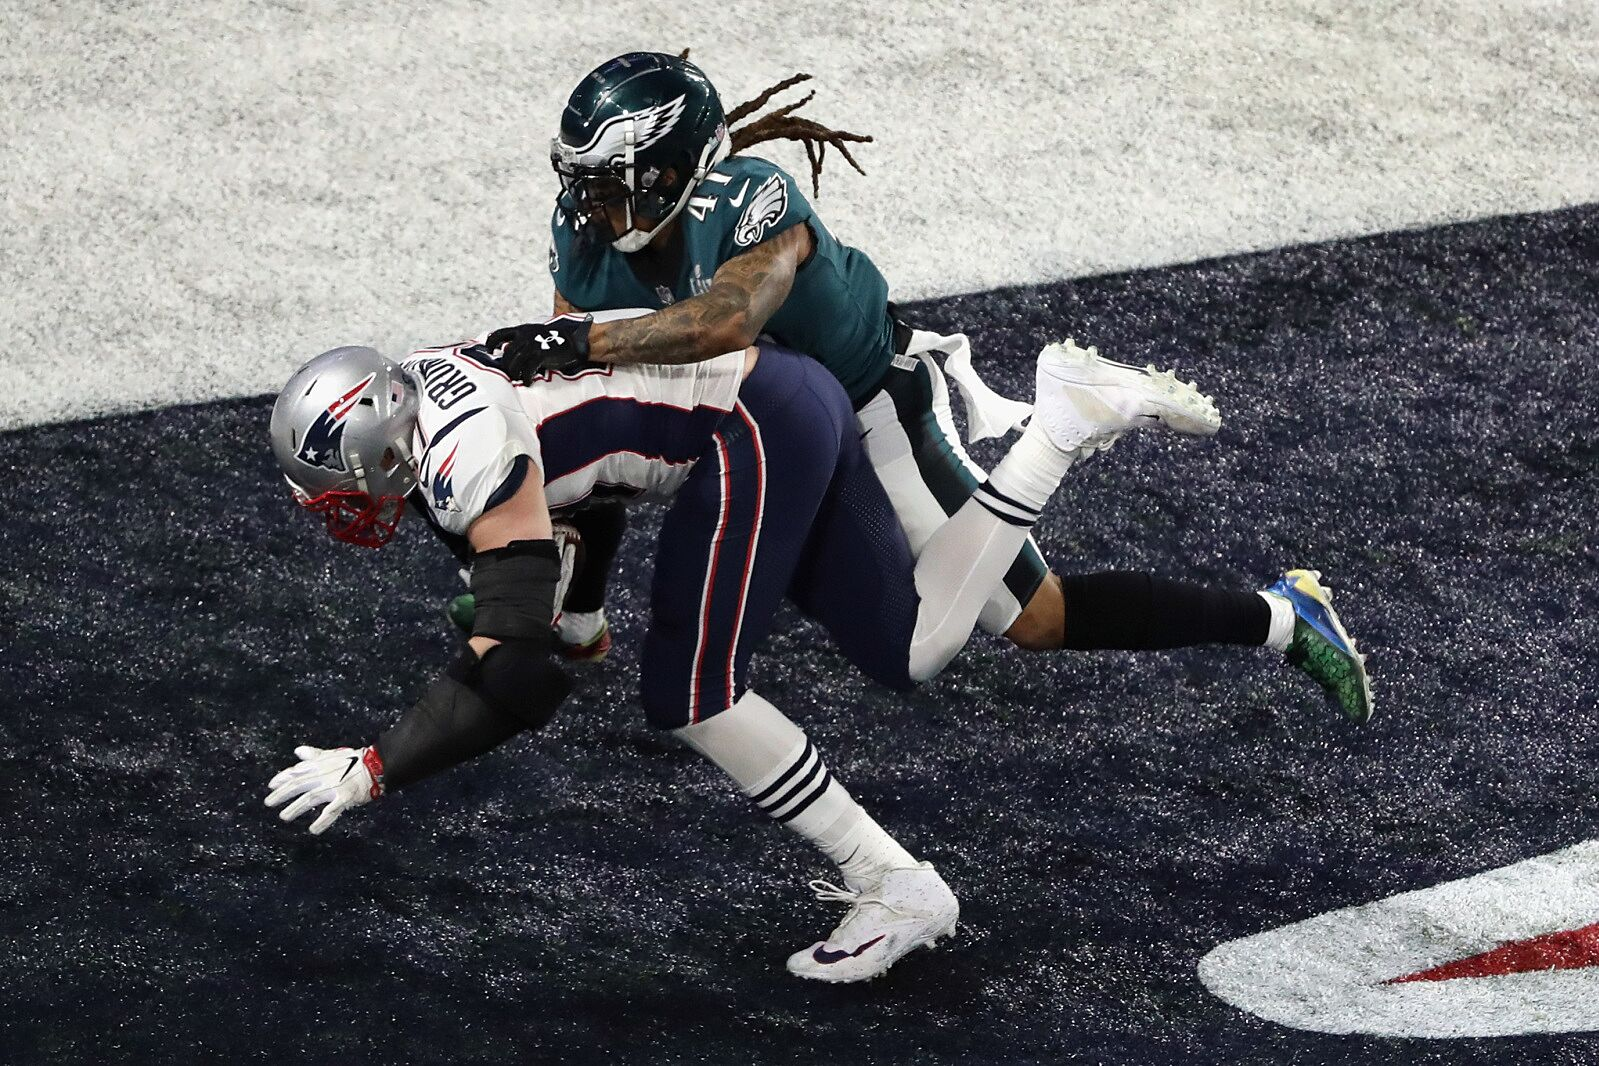 db27591b069e7b ... MN – FEBRUARY 04: Rob Gronkowski #87 of the New England Patriots makes  a 4-yard touchdown reception against Ronald Darby #41 of the Philadelphia  Eagles ...